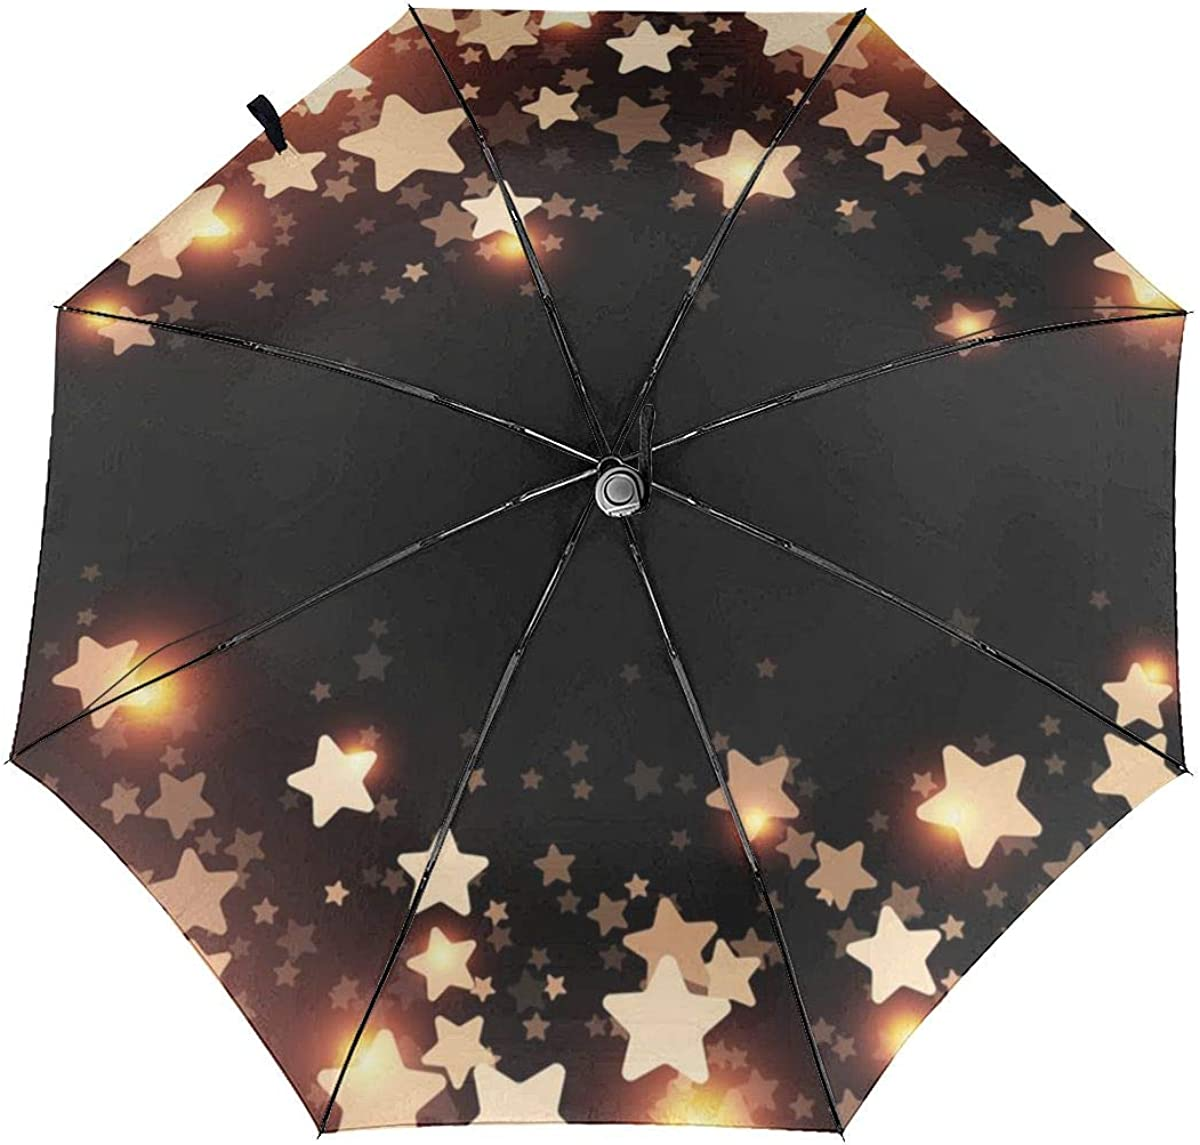 Black Starry Background Gold Compact Travel Umbrella Windproof Reinforced Canopy 8 Ribs Umbrella Auto Open And Close Button Customized